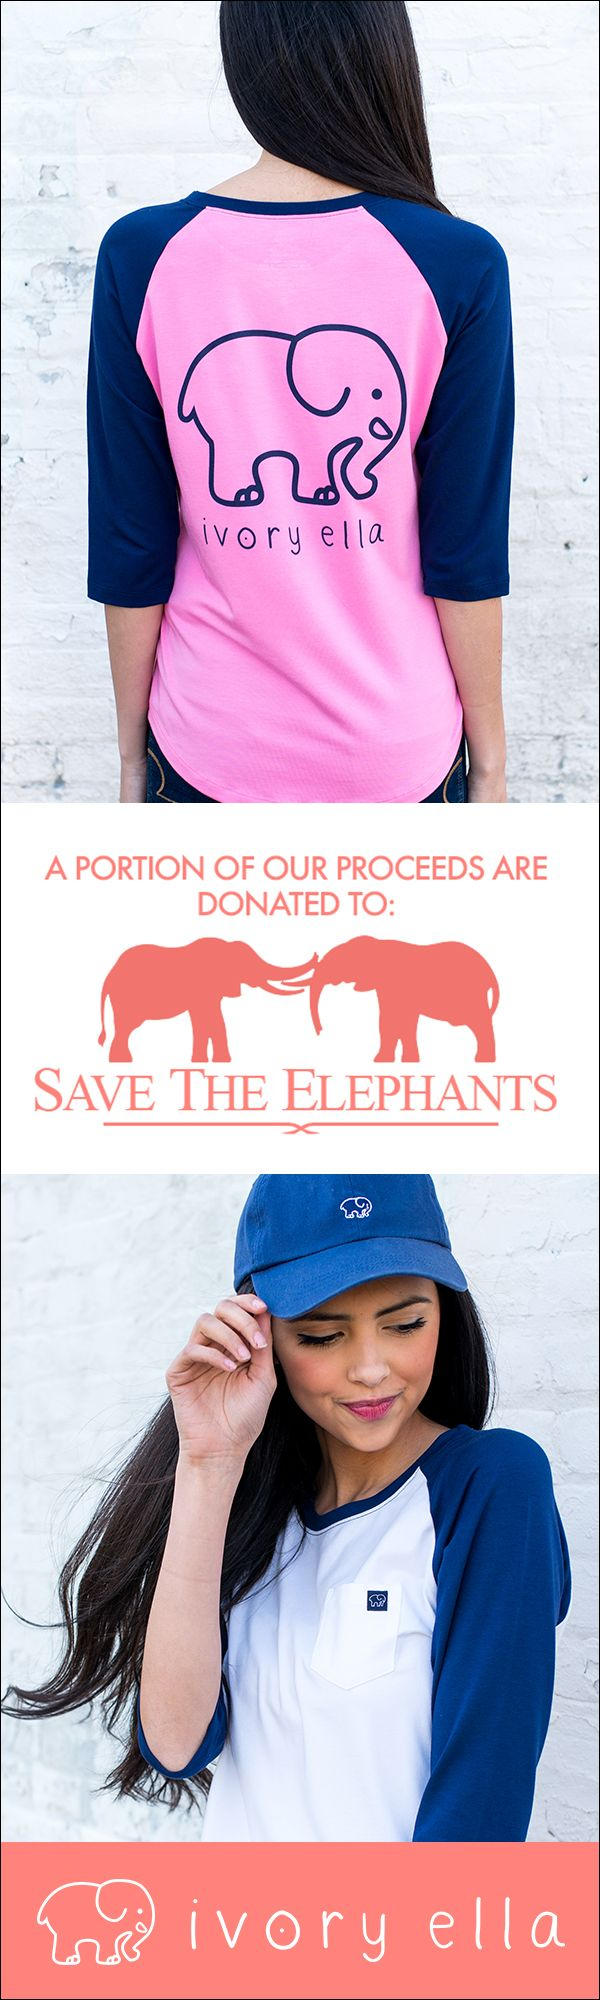 Check out our baseball tees collection. Every purchase supports Save the Elephants.